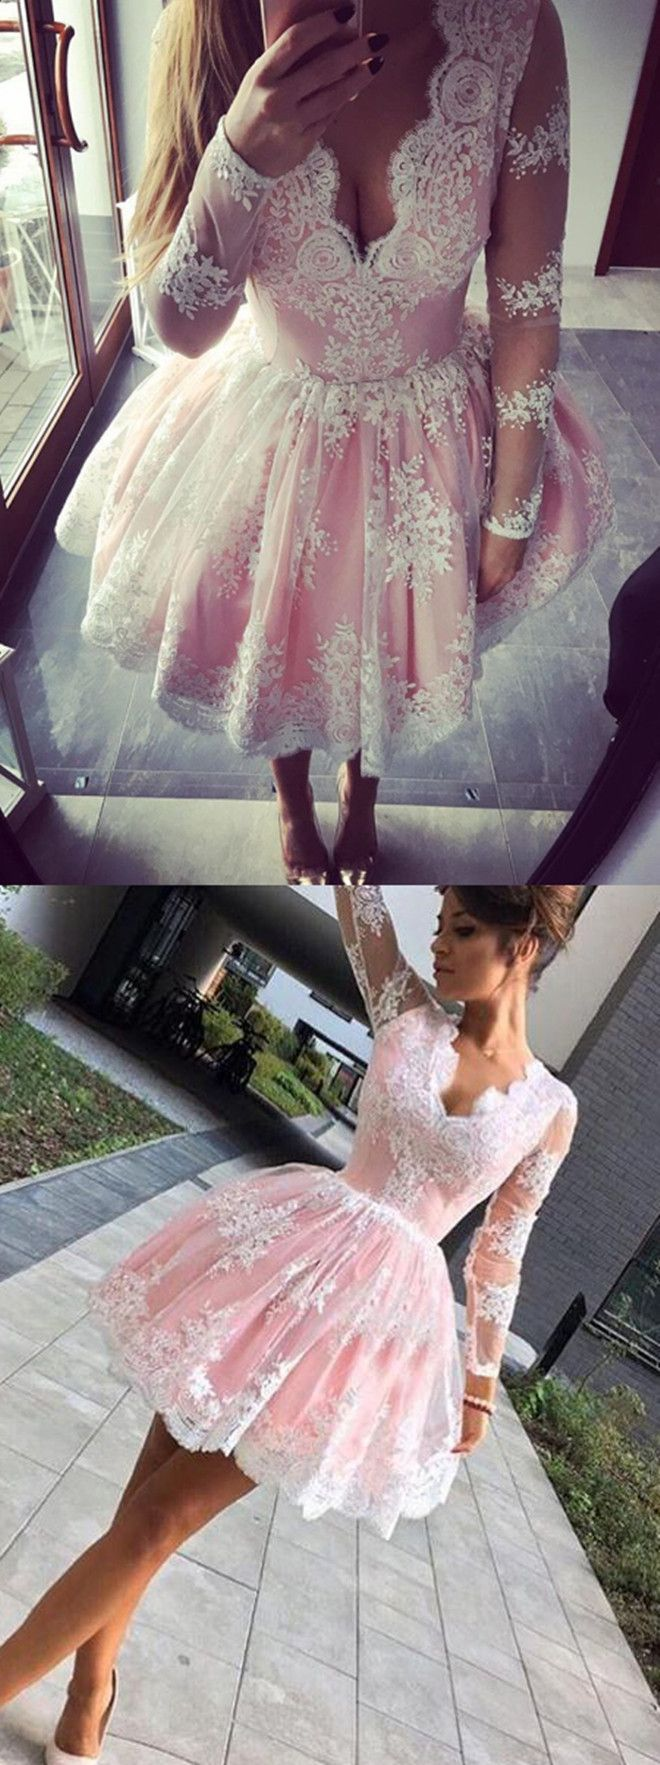 short homecoming dresses,lace homecoming dresses,pink homecoming dresses,graduation dresses